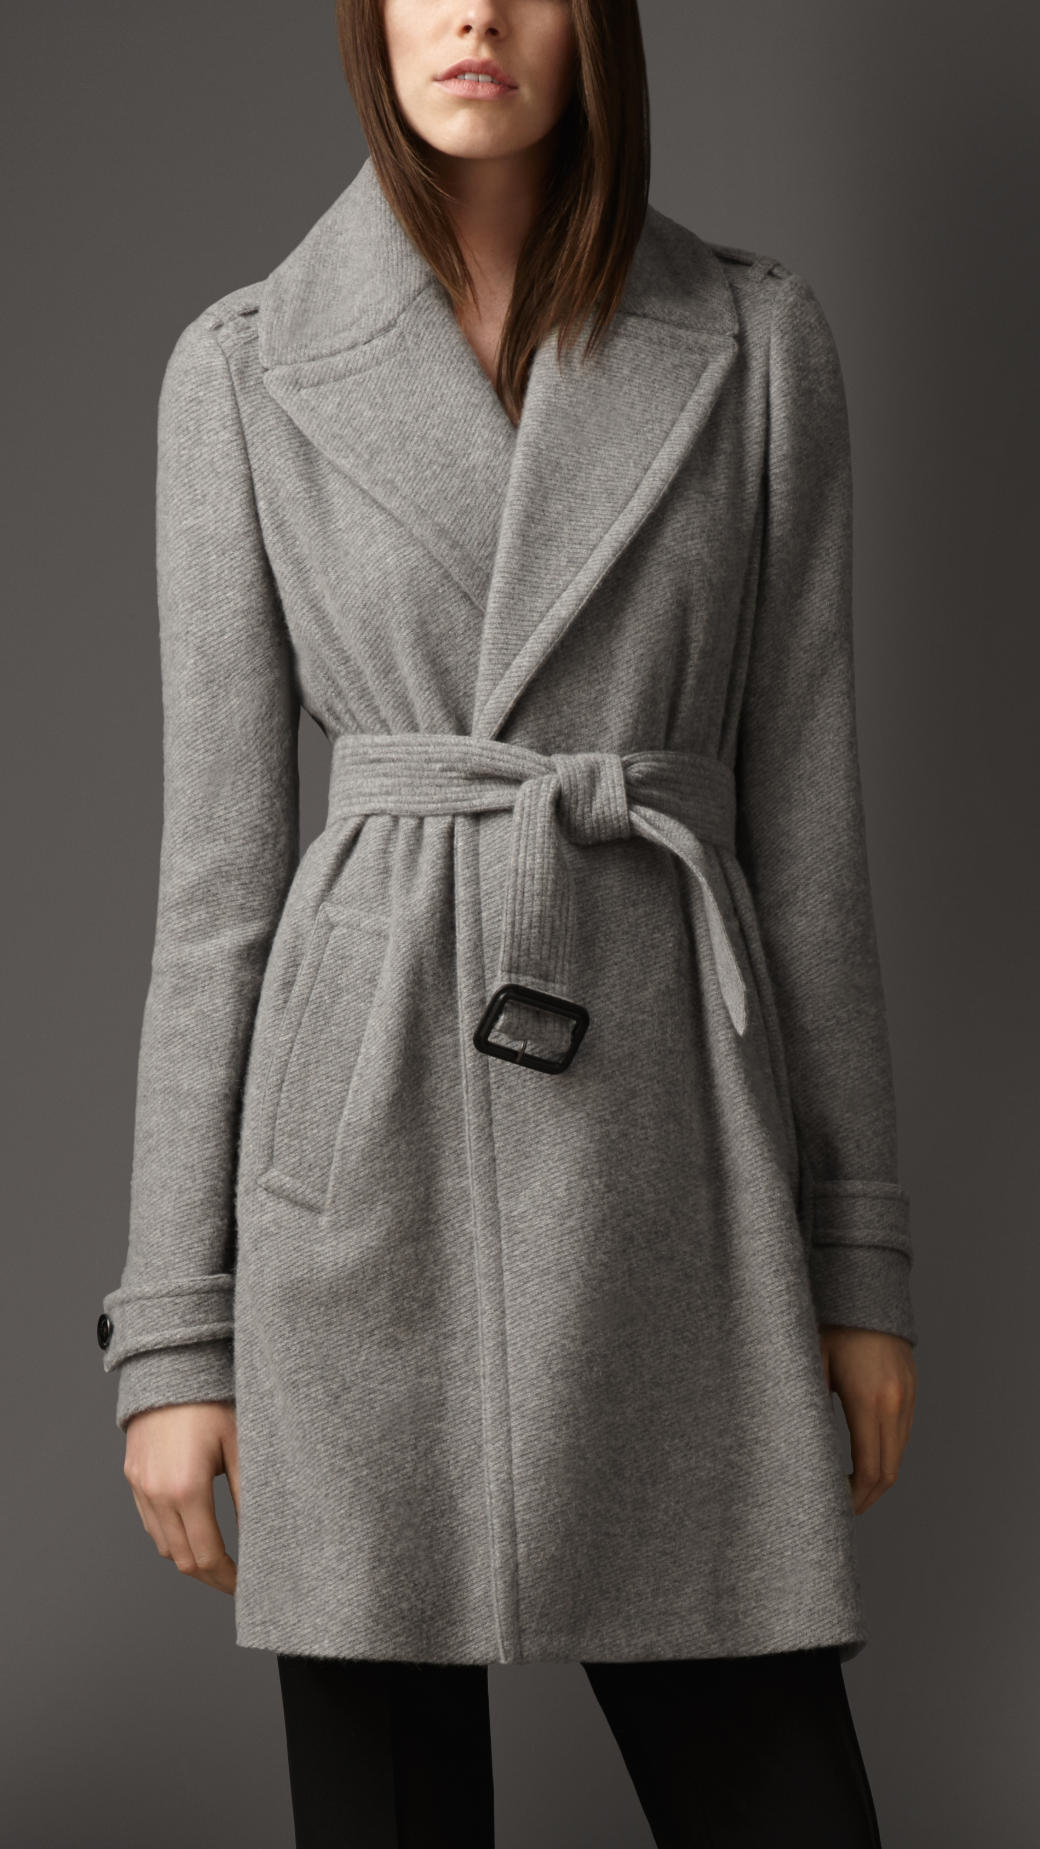 Burberry Cashmere Belted Wrap Coat in Gray | Lyst